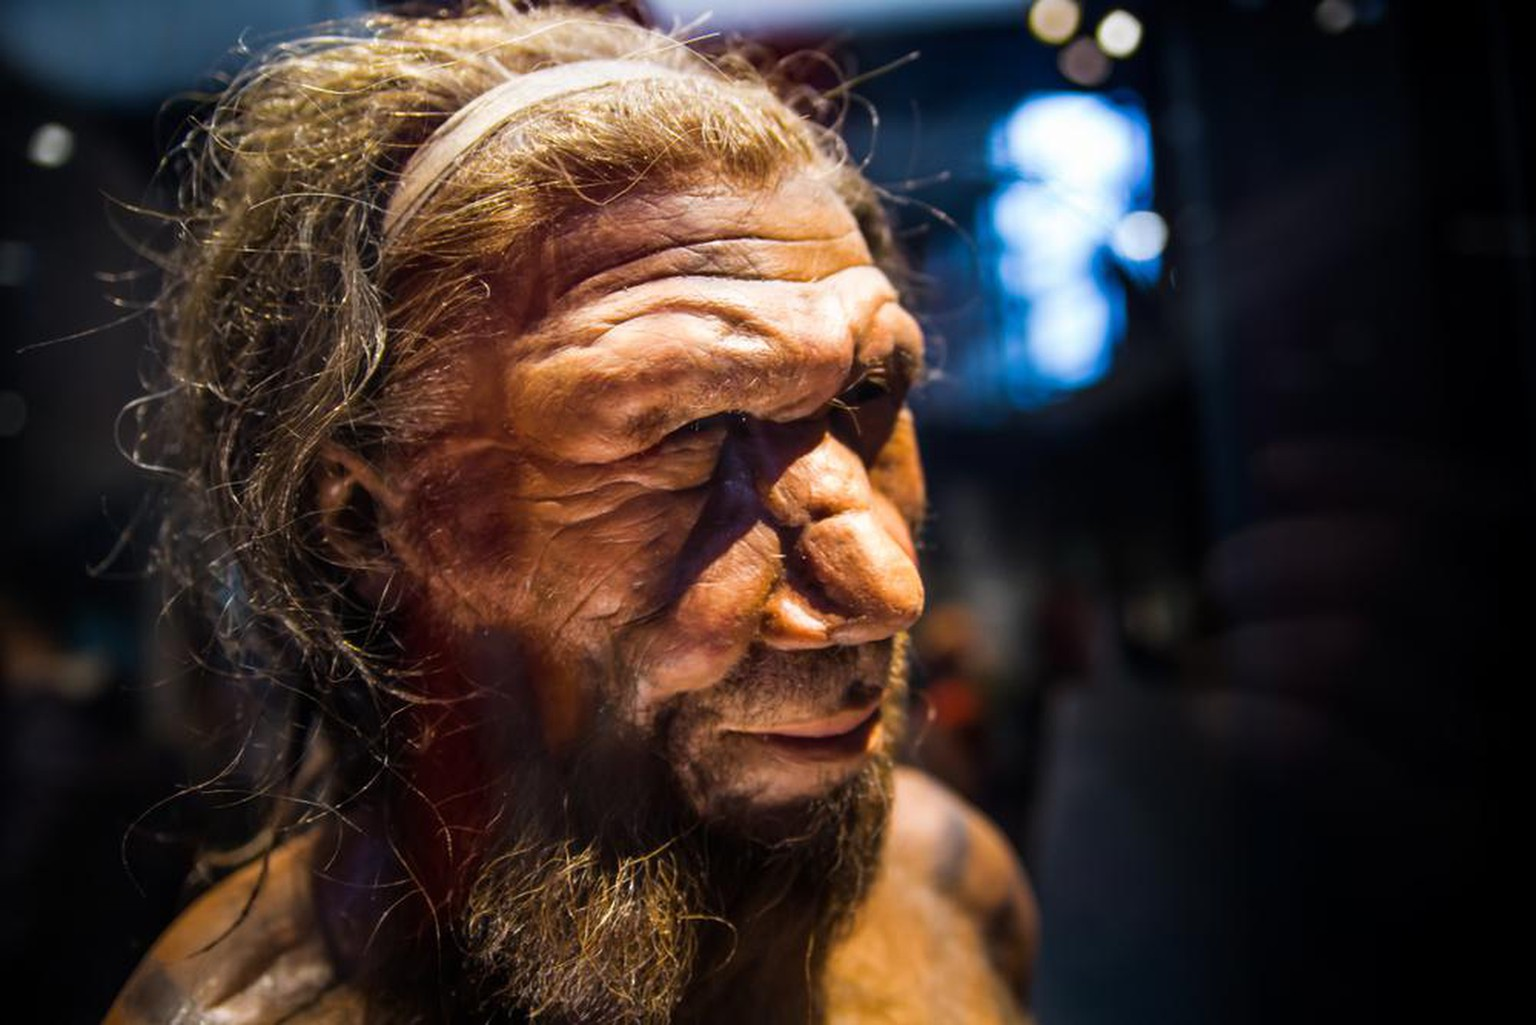 Neandertaler-Mann, London, UK - March 11, 2018: Neanderthal Homo adult male, based on 40000 year-old remains found at Spy in Belgium. National history museum.